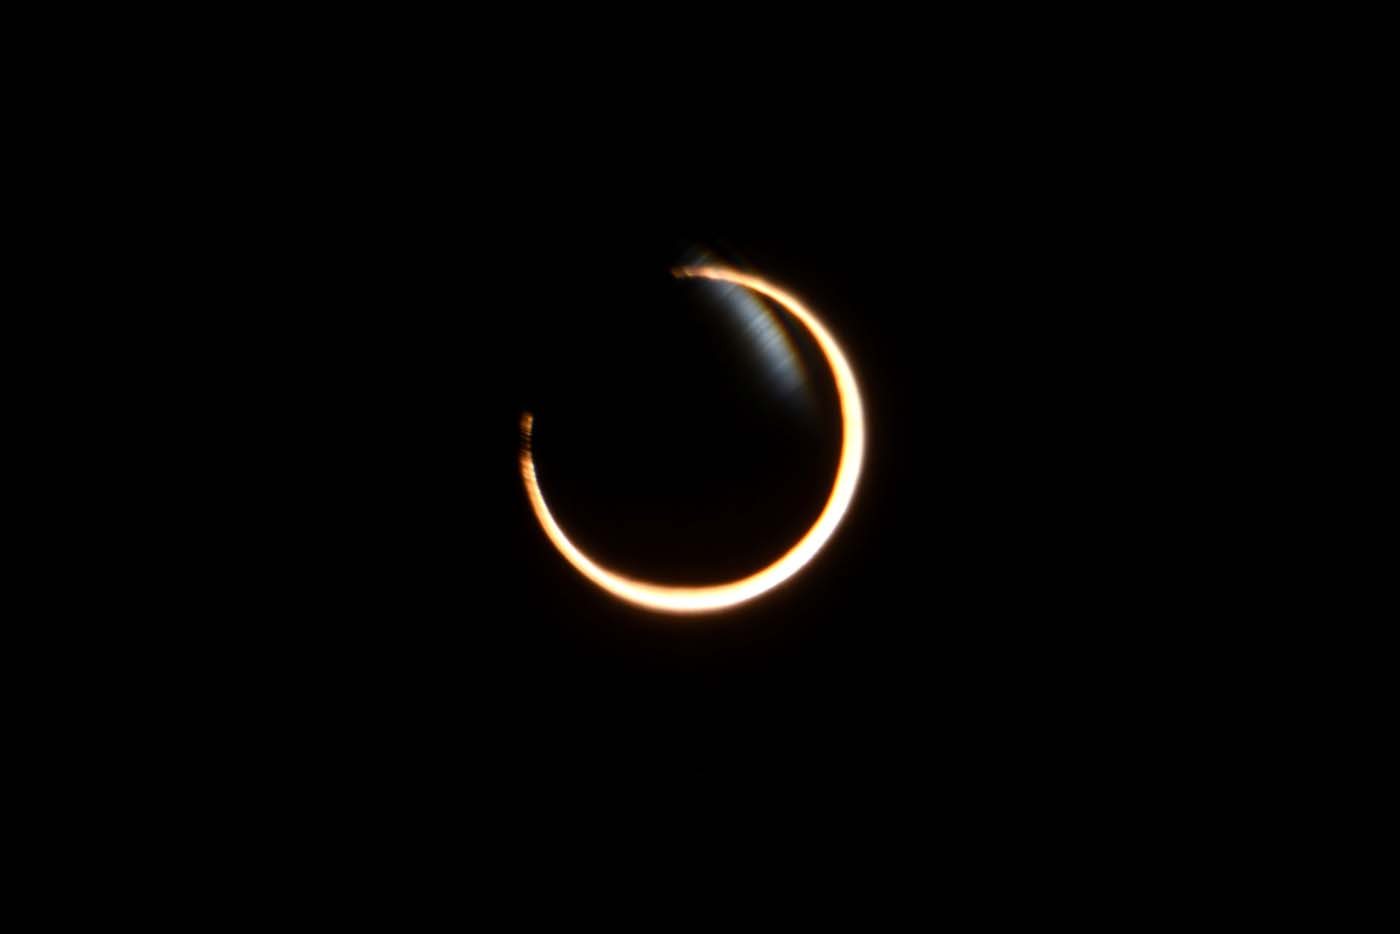 The moon passes between the sun and the earth during a solar eclipse in Coyhaique, Chile February 26, 2017. REUTERS/Stringer EDITORIAL USE ONLY. NO RESALES. NO ARCHIVE